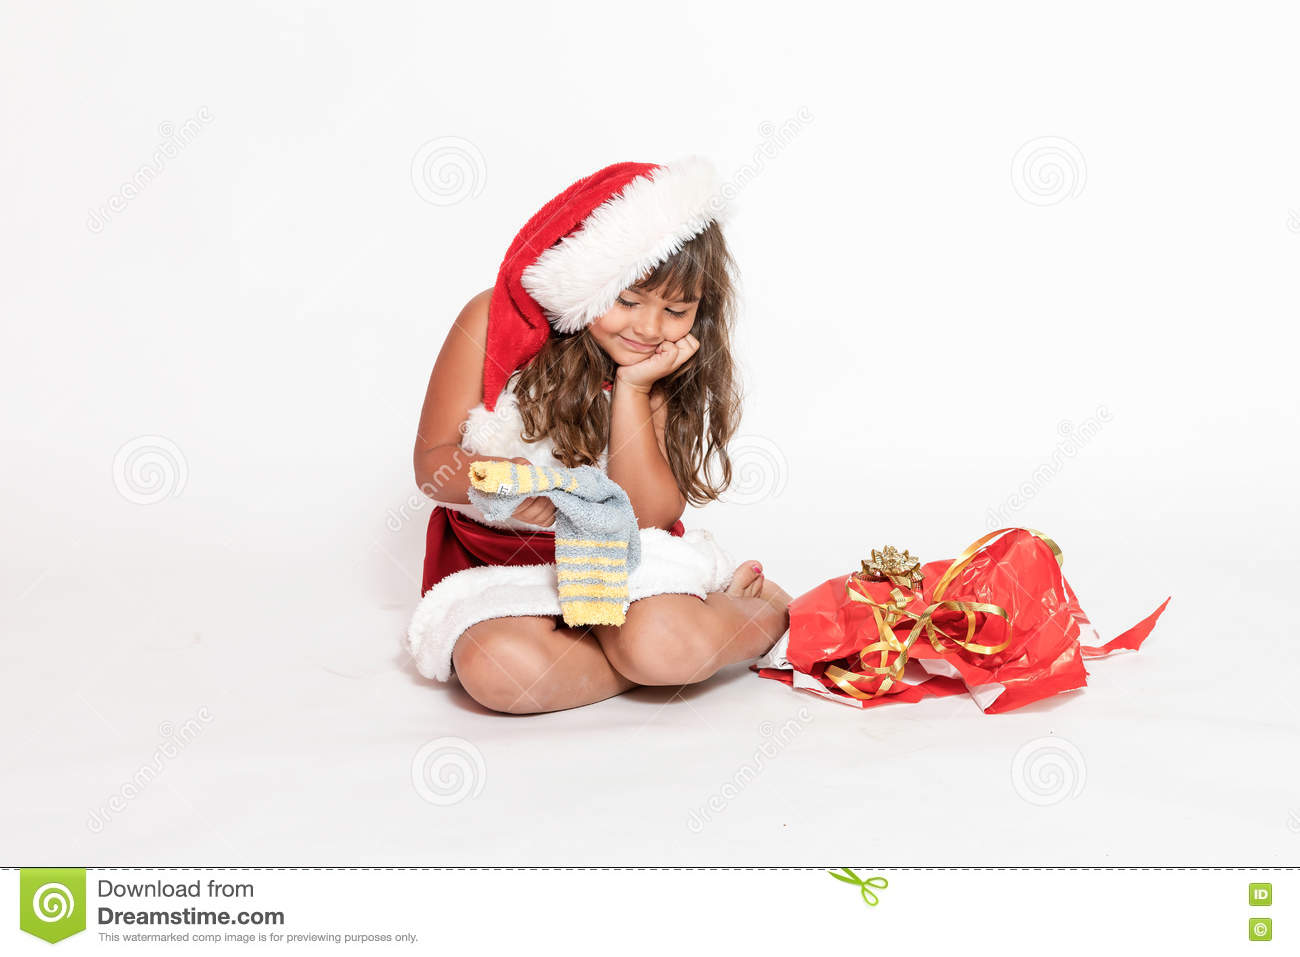 Smiling little girl is looking at an inappropriate gift